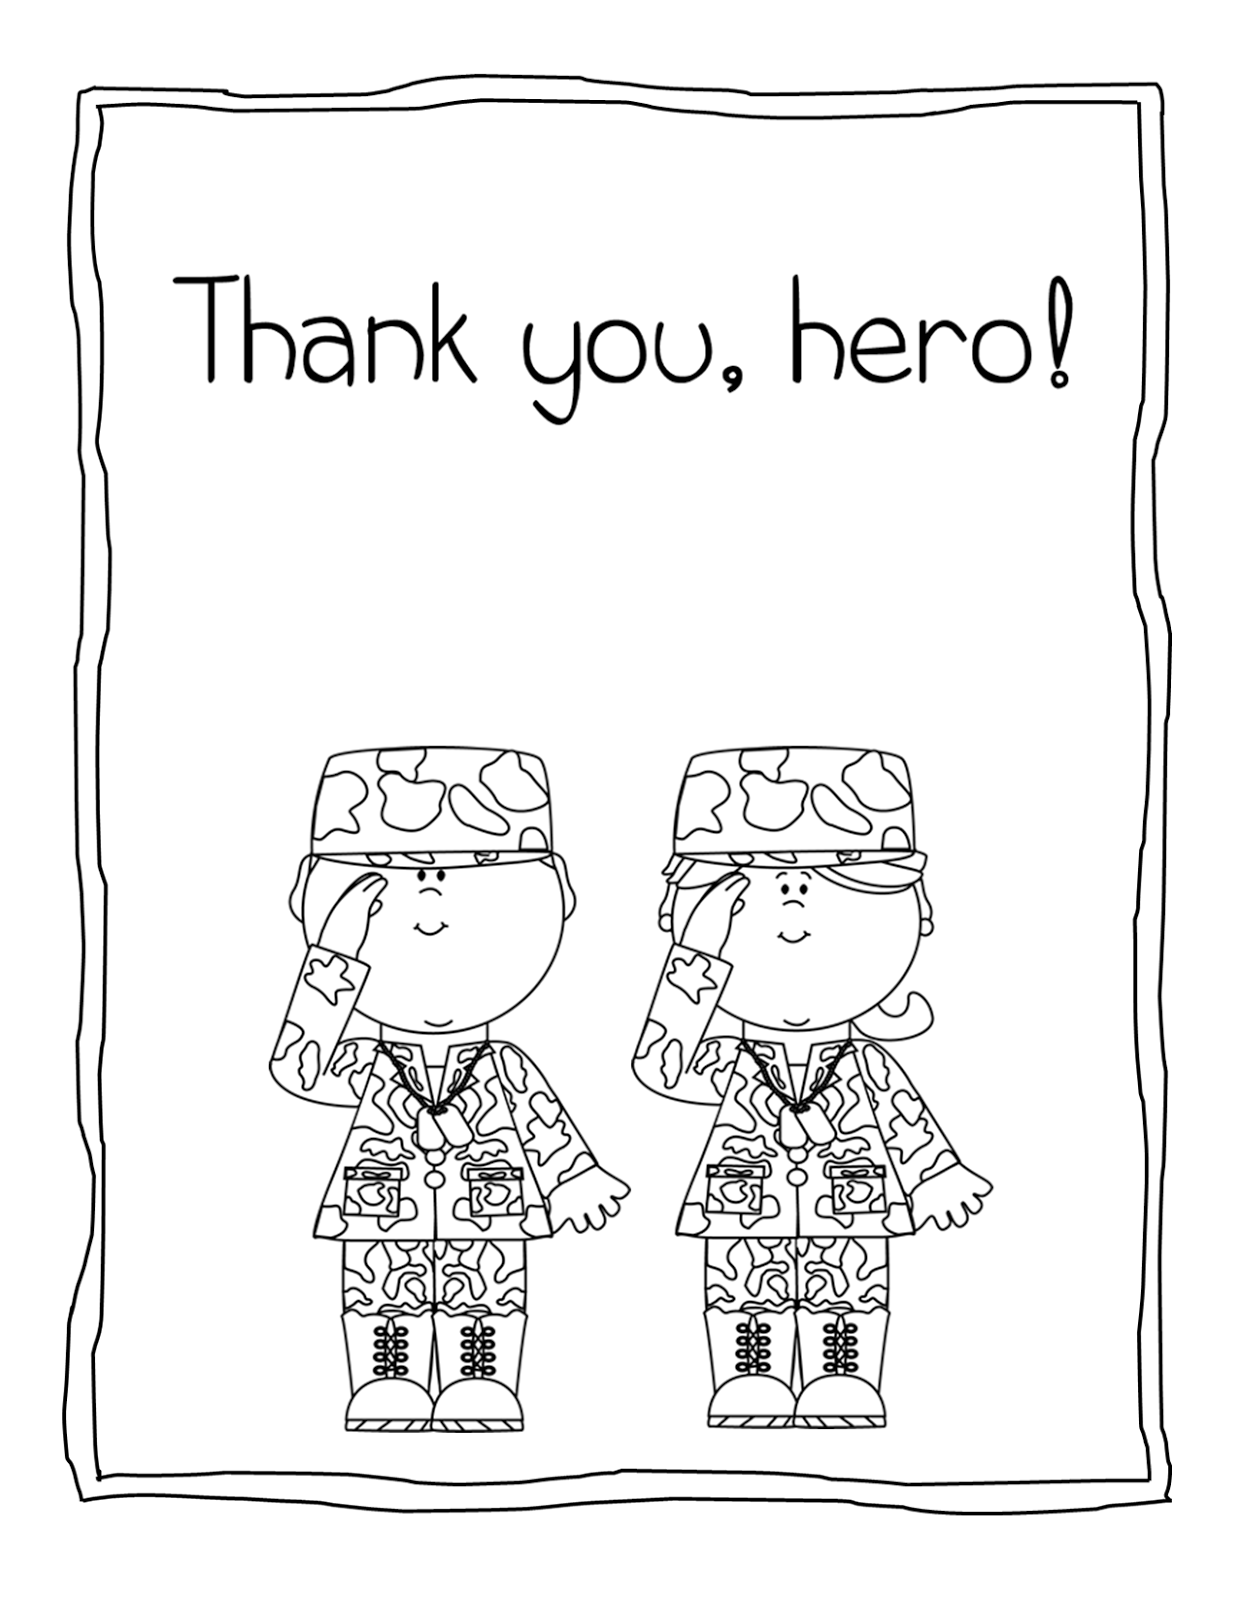 Veterans Day Coloring Pages For Preschool Happy Veterans Day Images 2018 Veterans Day Coloring Page Coloring Pages Inspirational Coloring Pages